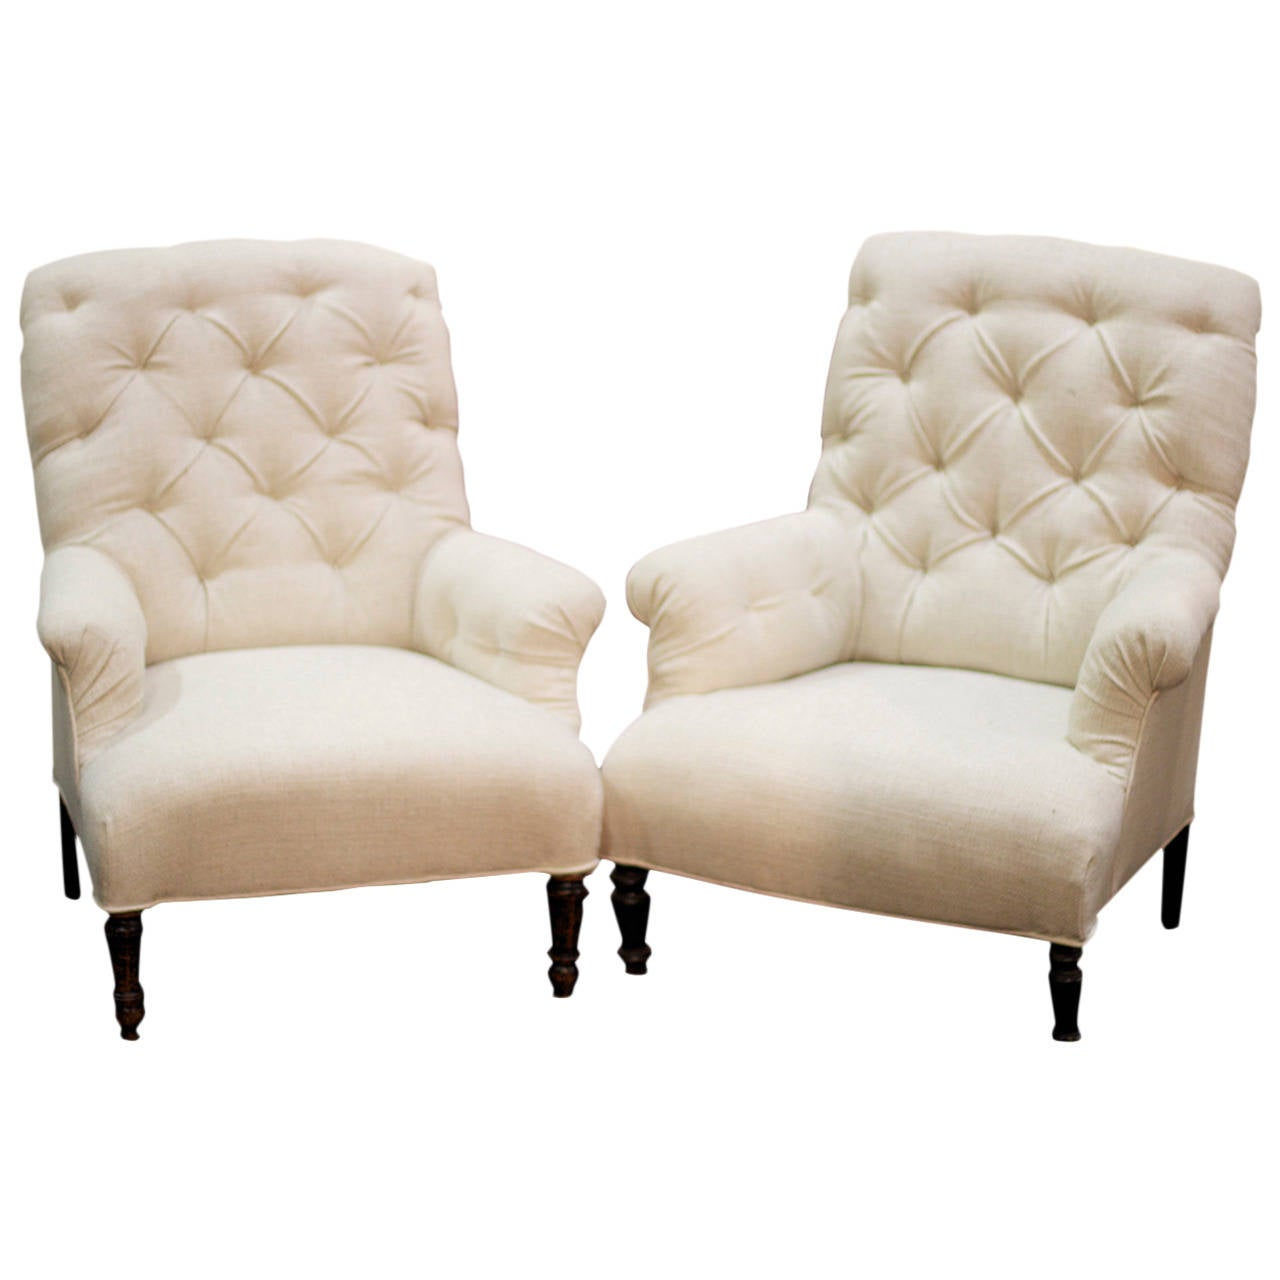 Pair of 1880s French Tufted Club Chairs